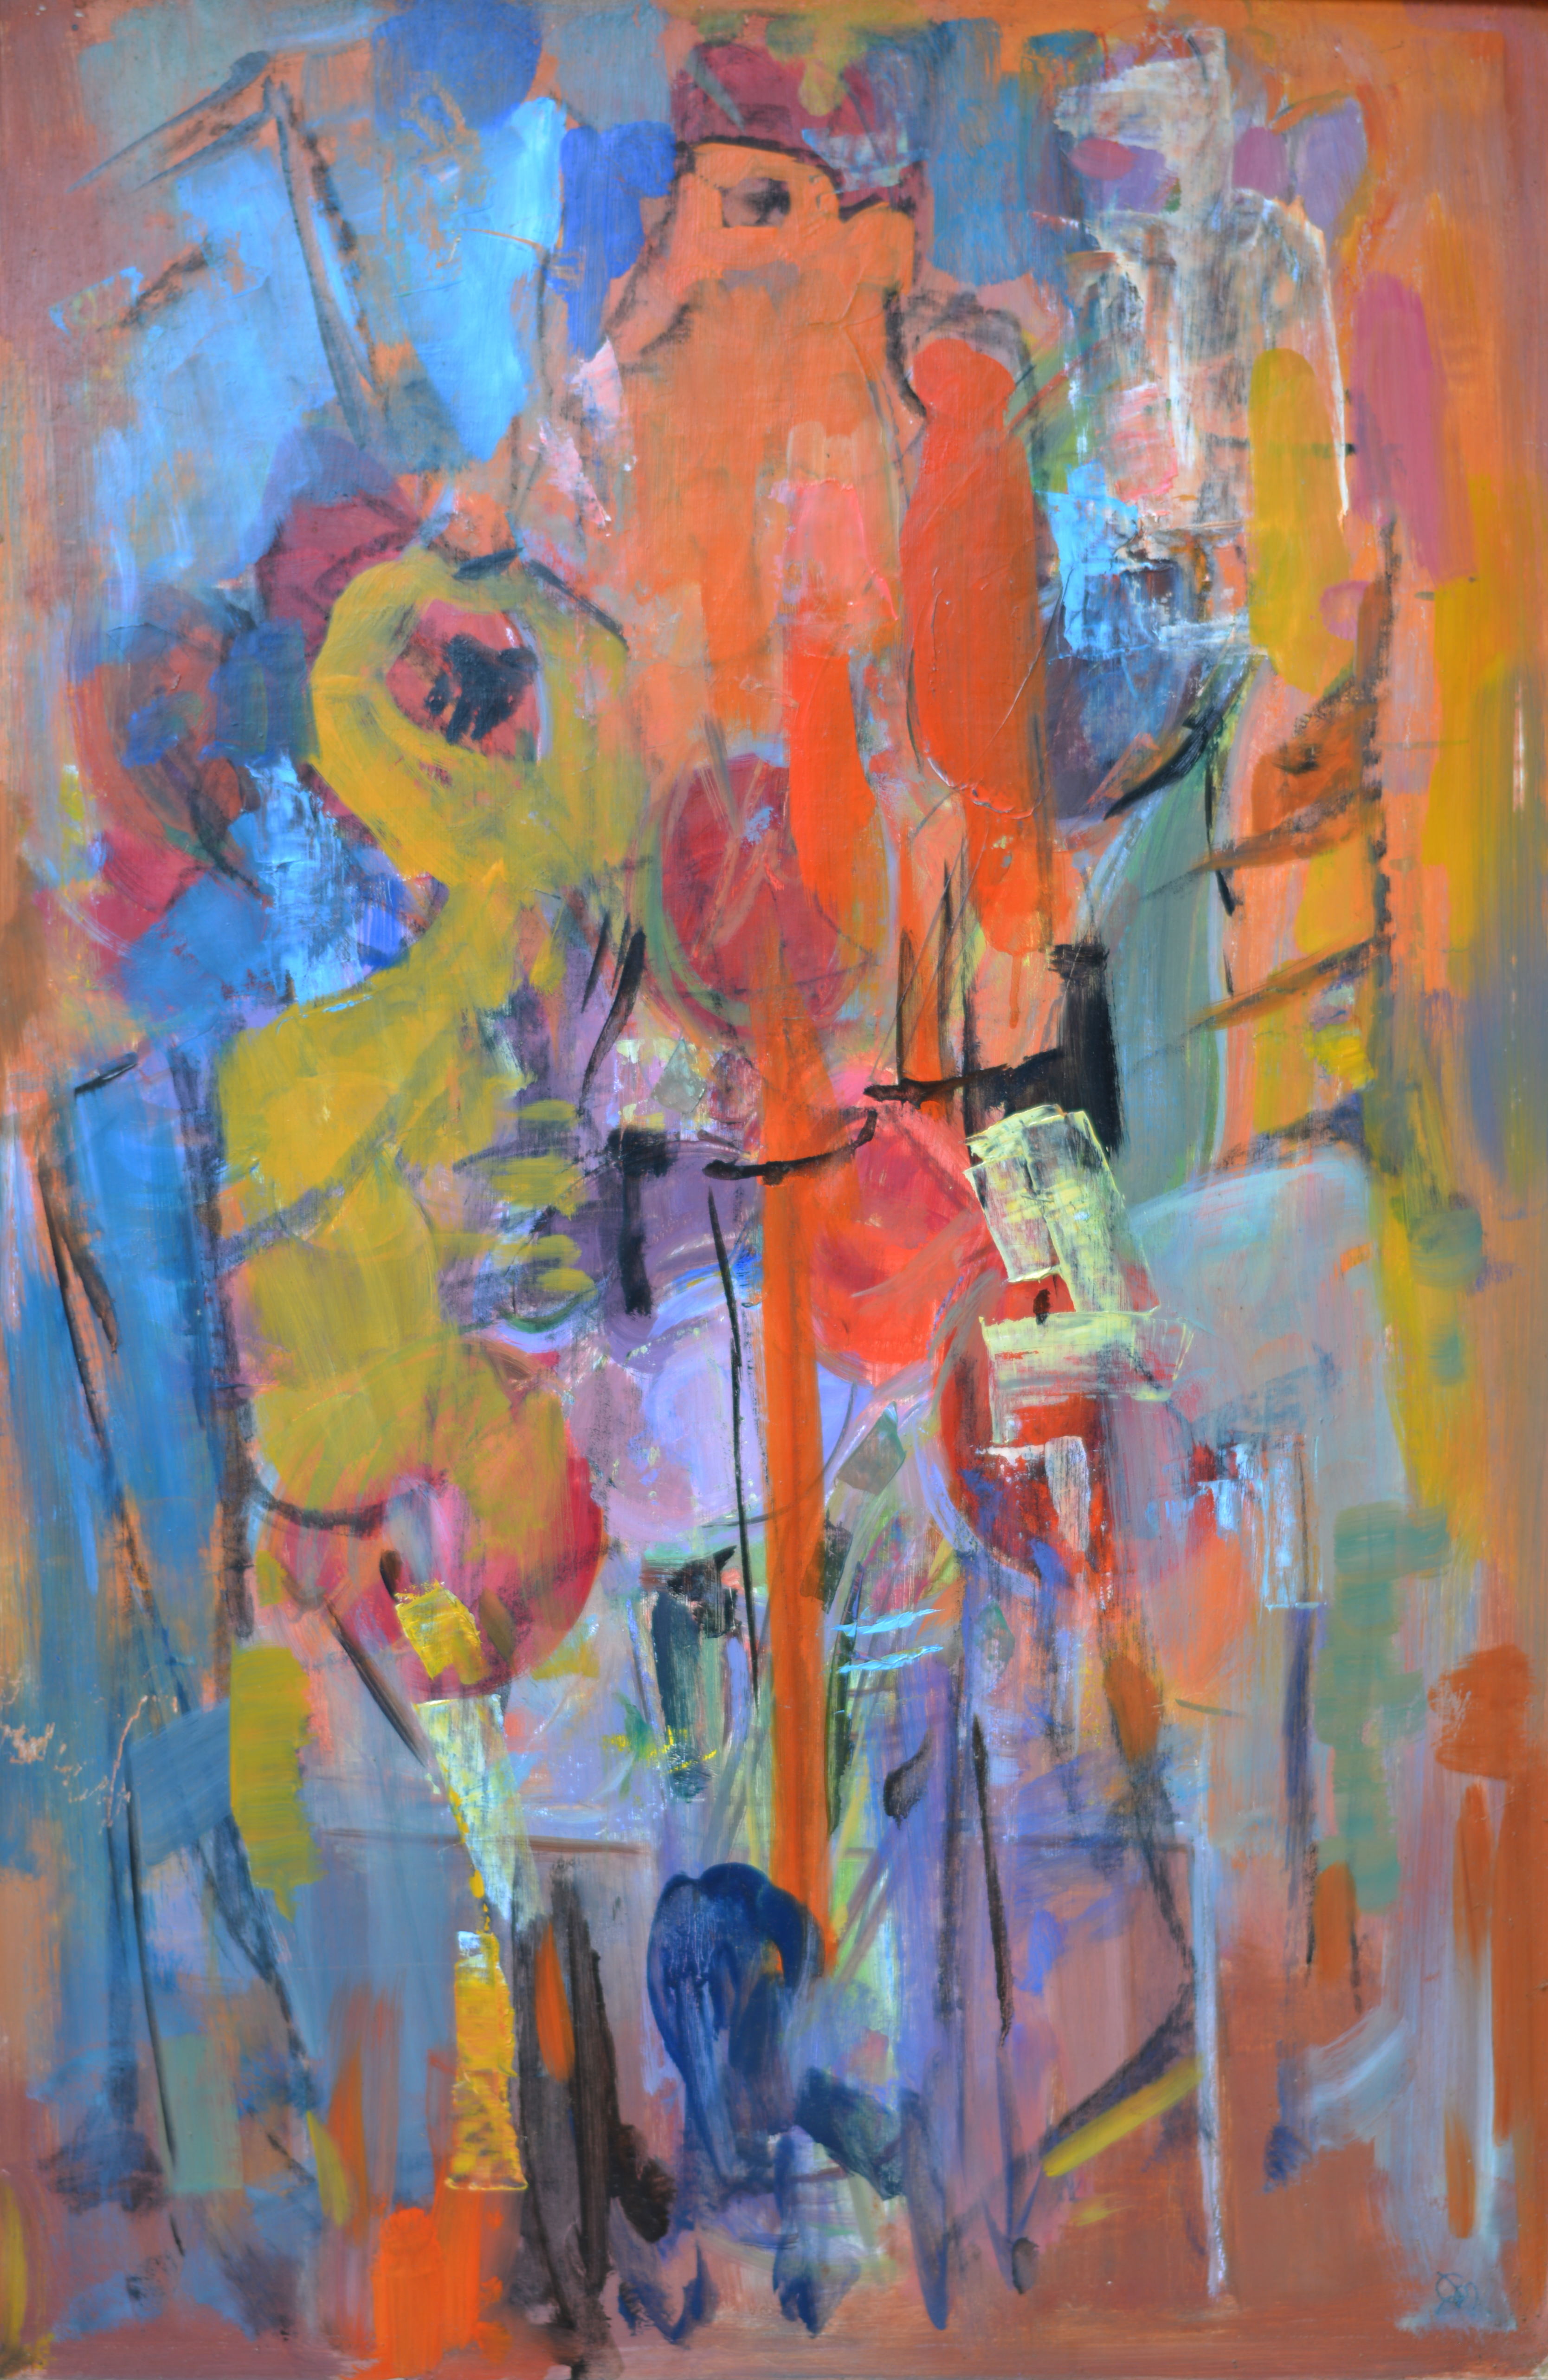 579. Abstraction. Huile sur Isorel